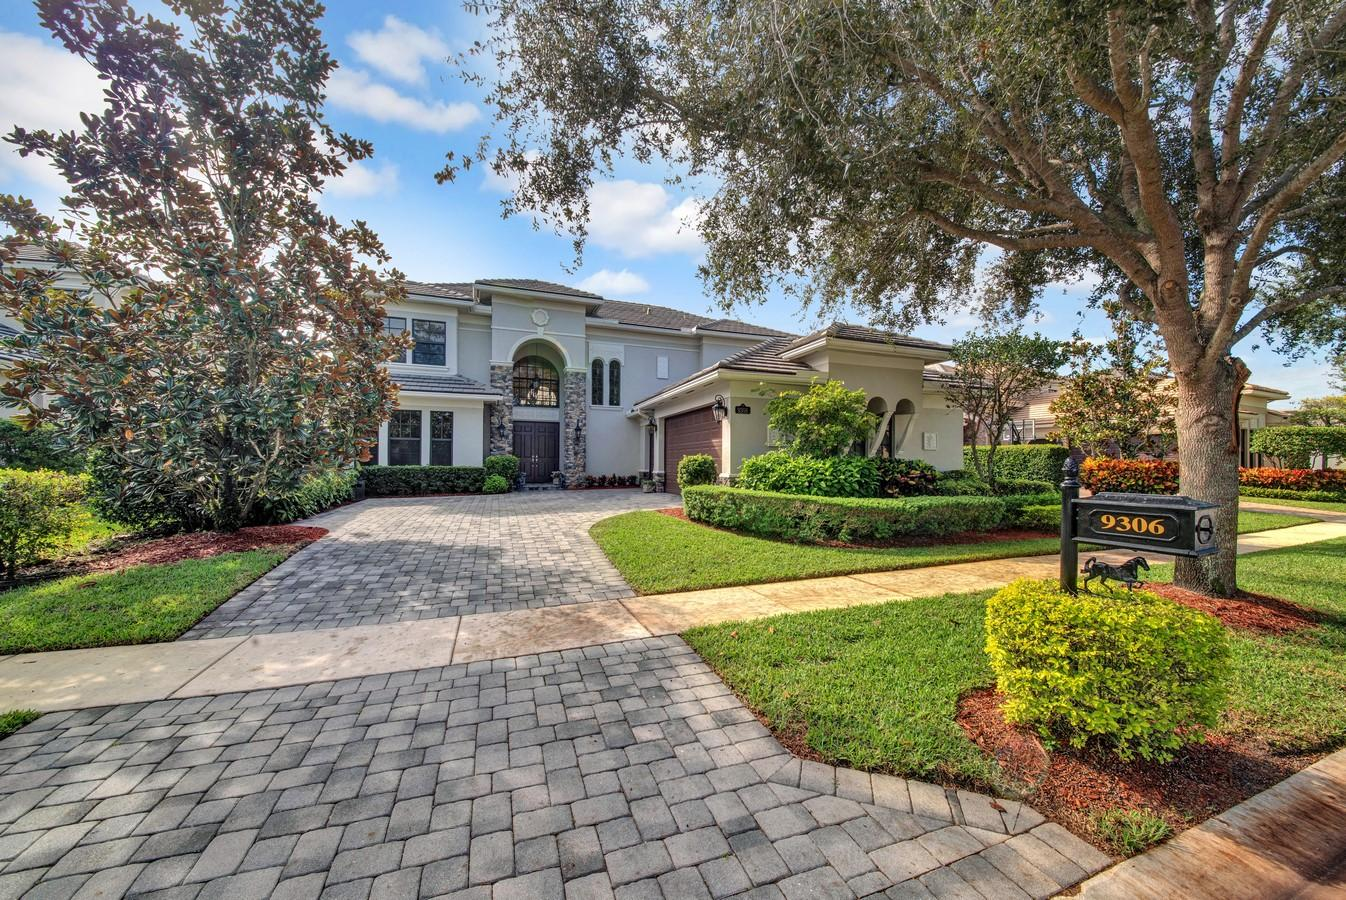 9306 Equus Circle  Boynton Beach, FL 33472